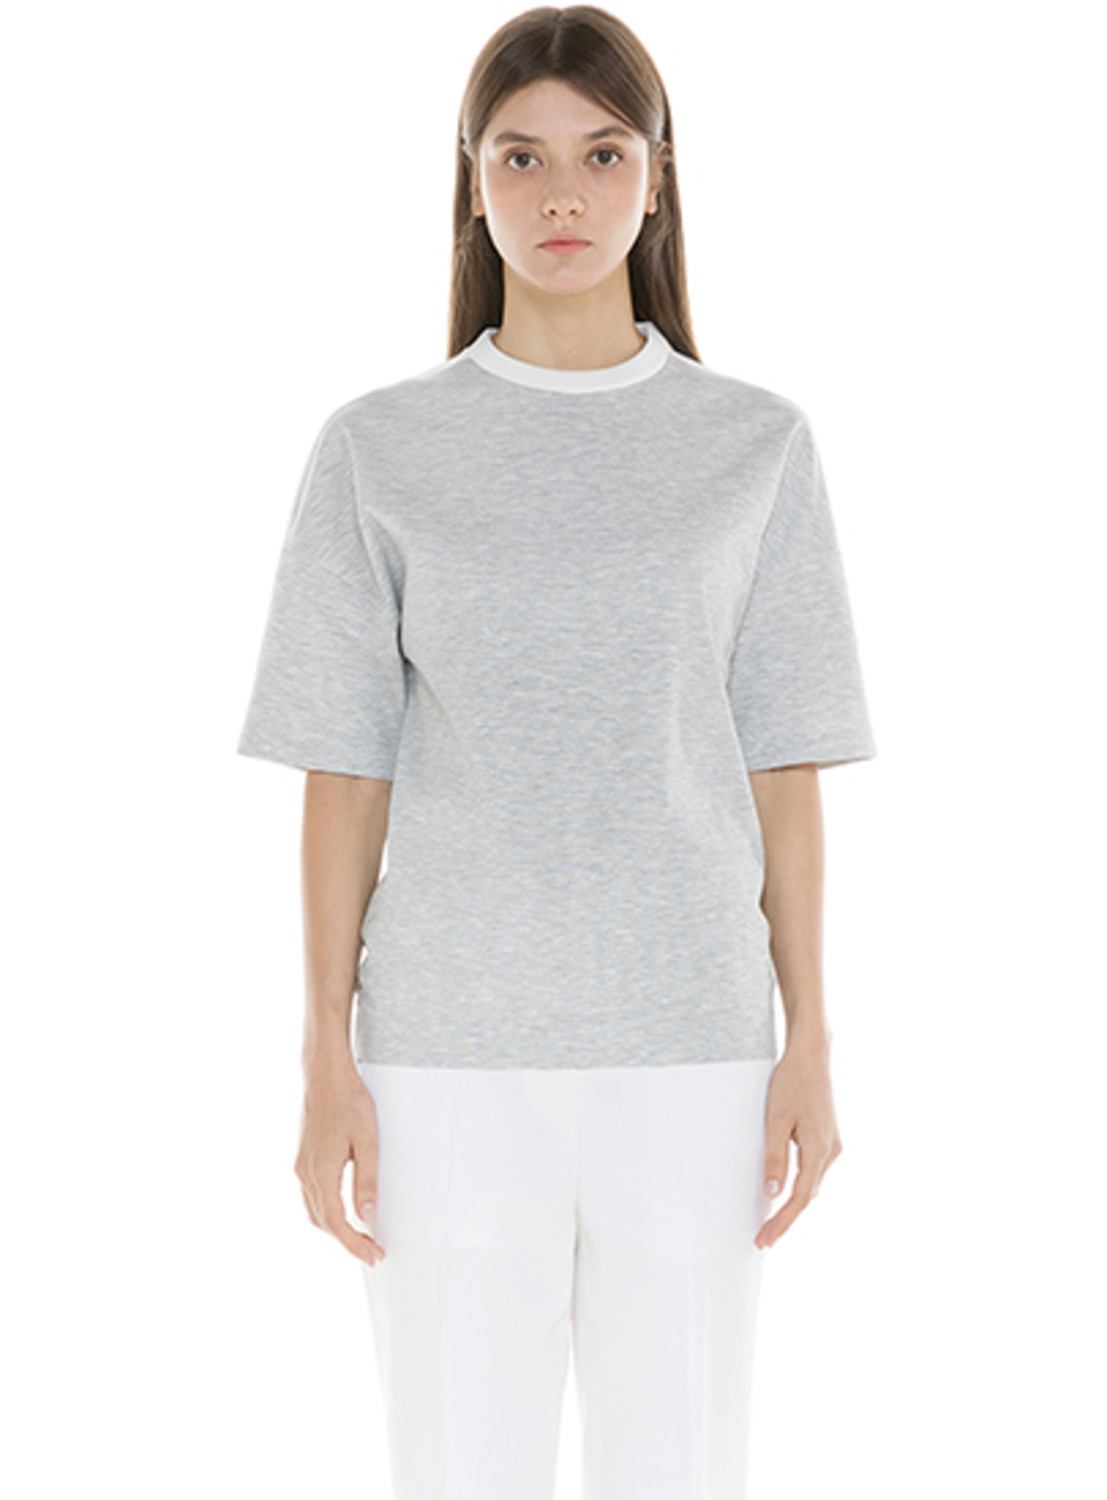 Grey Color scheme T-Shirt